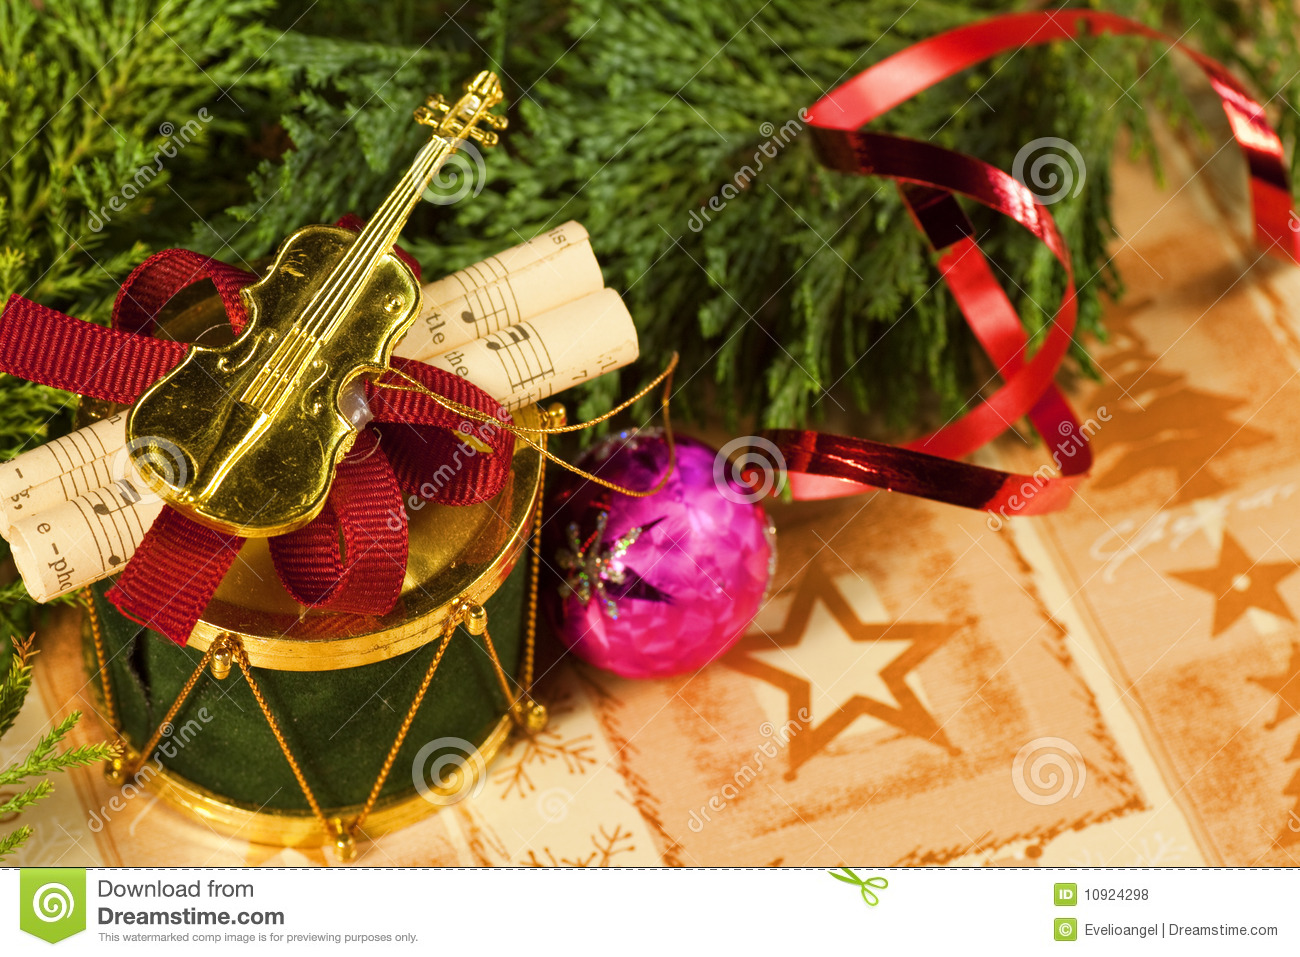 Violin christmas ornaments - Musical Christmas Ornament Macro